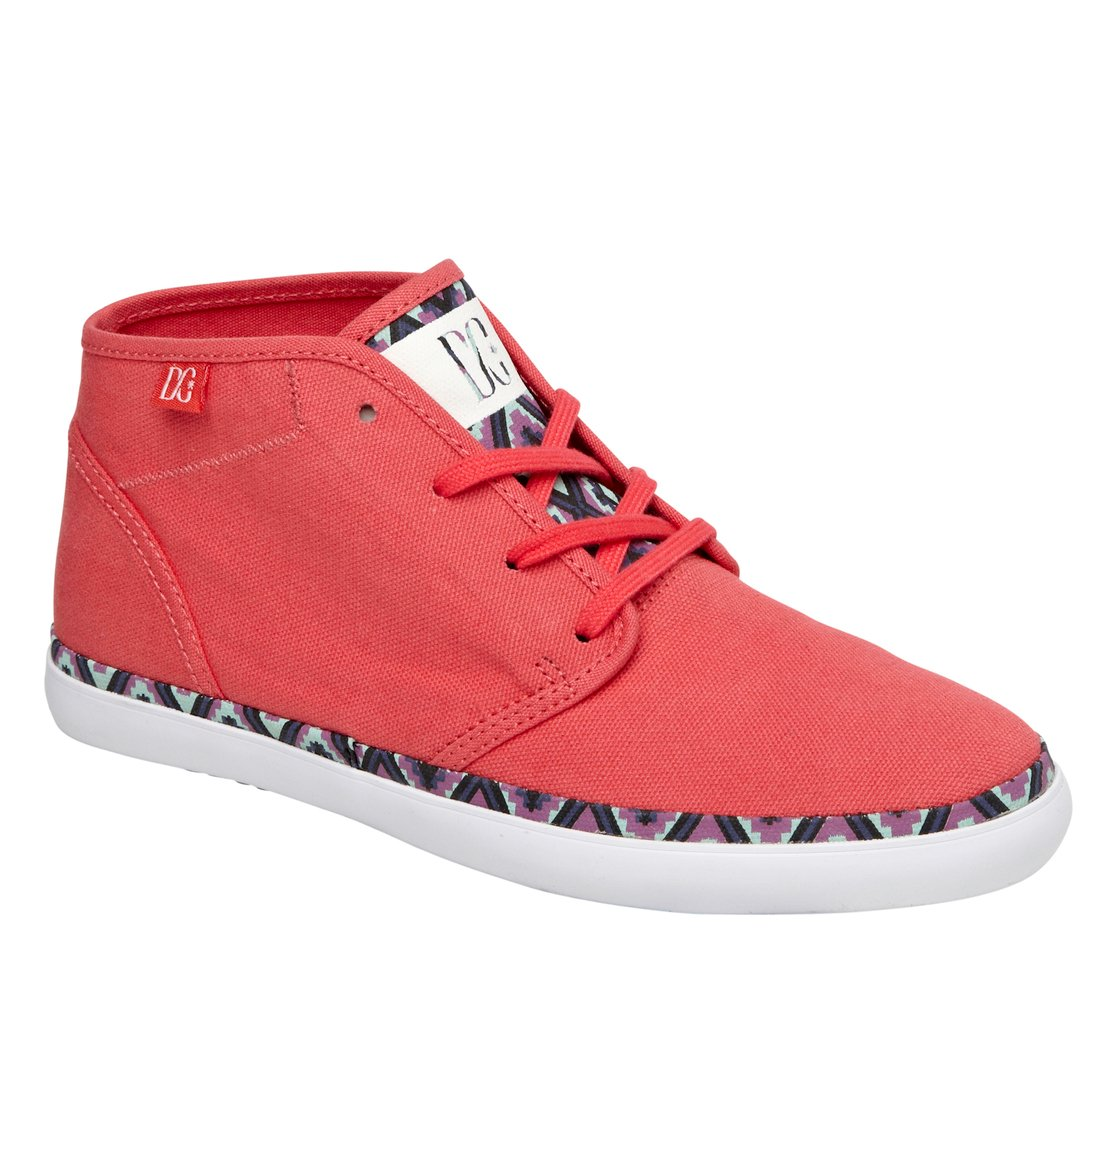 DC SHOES WOMENS STUDIO MID LTZ CASUAL SNEAKERS